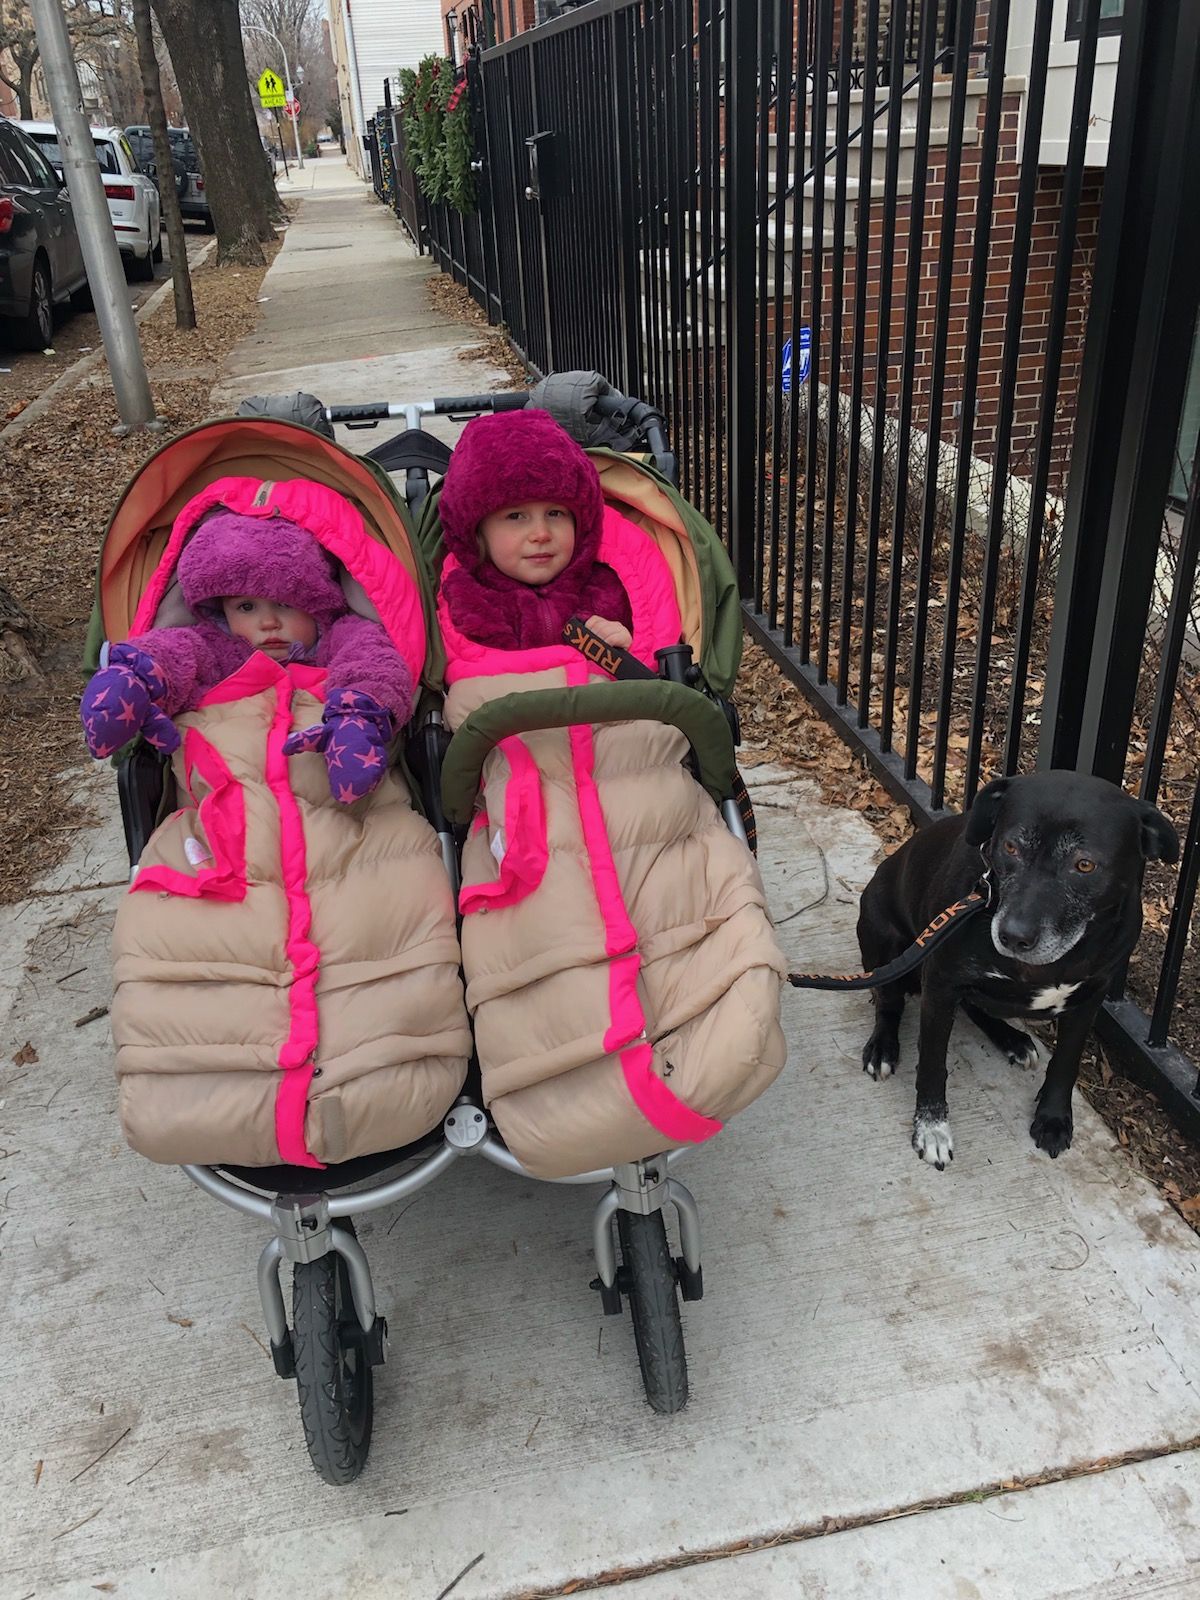 Tabby and Junie Alderman of Chicago slaying the Polar Vortex in their toddler boss 7Am Enfant Blankets. Putney, less than thrilled